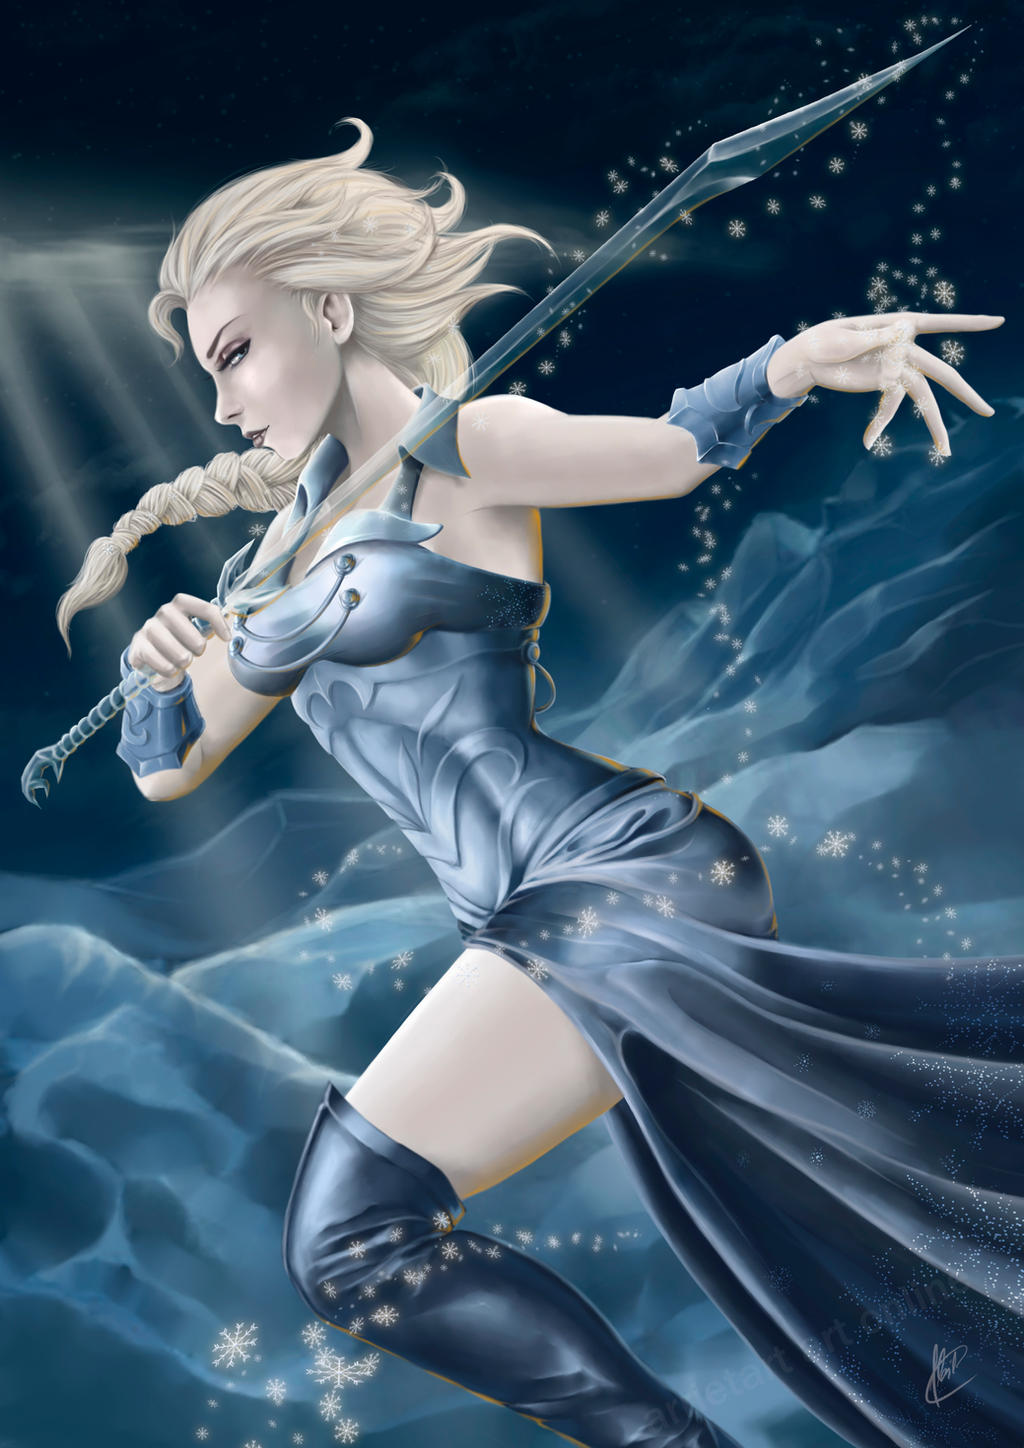 elsa_the_frozen_warrior_ver_2_by_arrieta